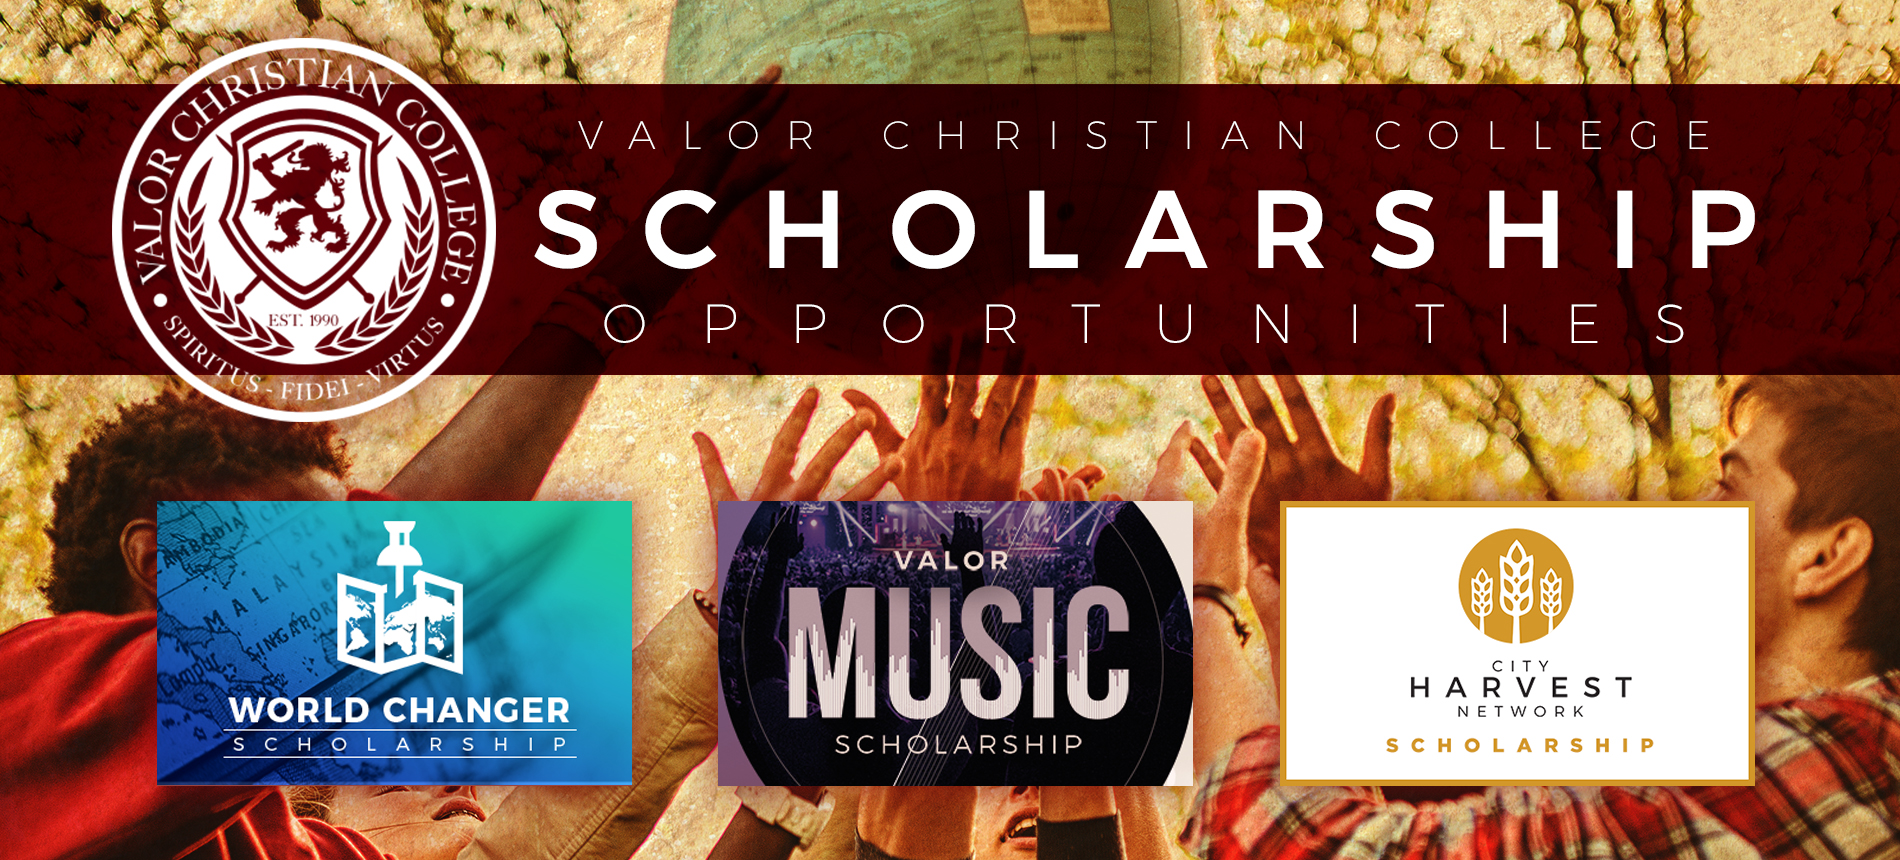 VCC Scholarship Opportunities | WHCE